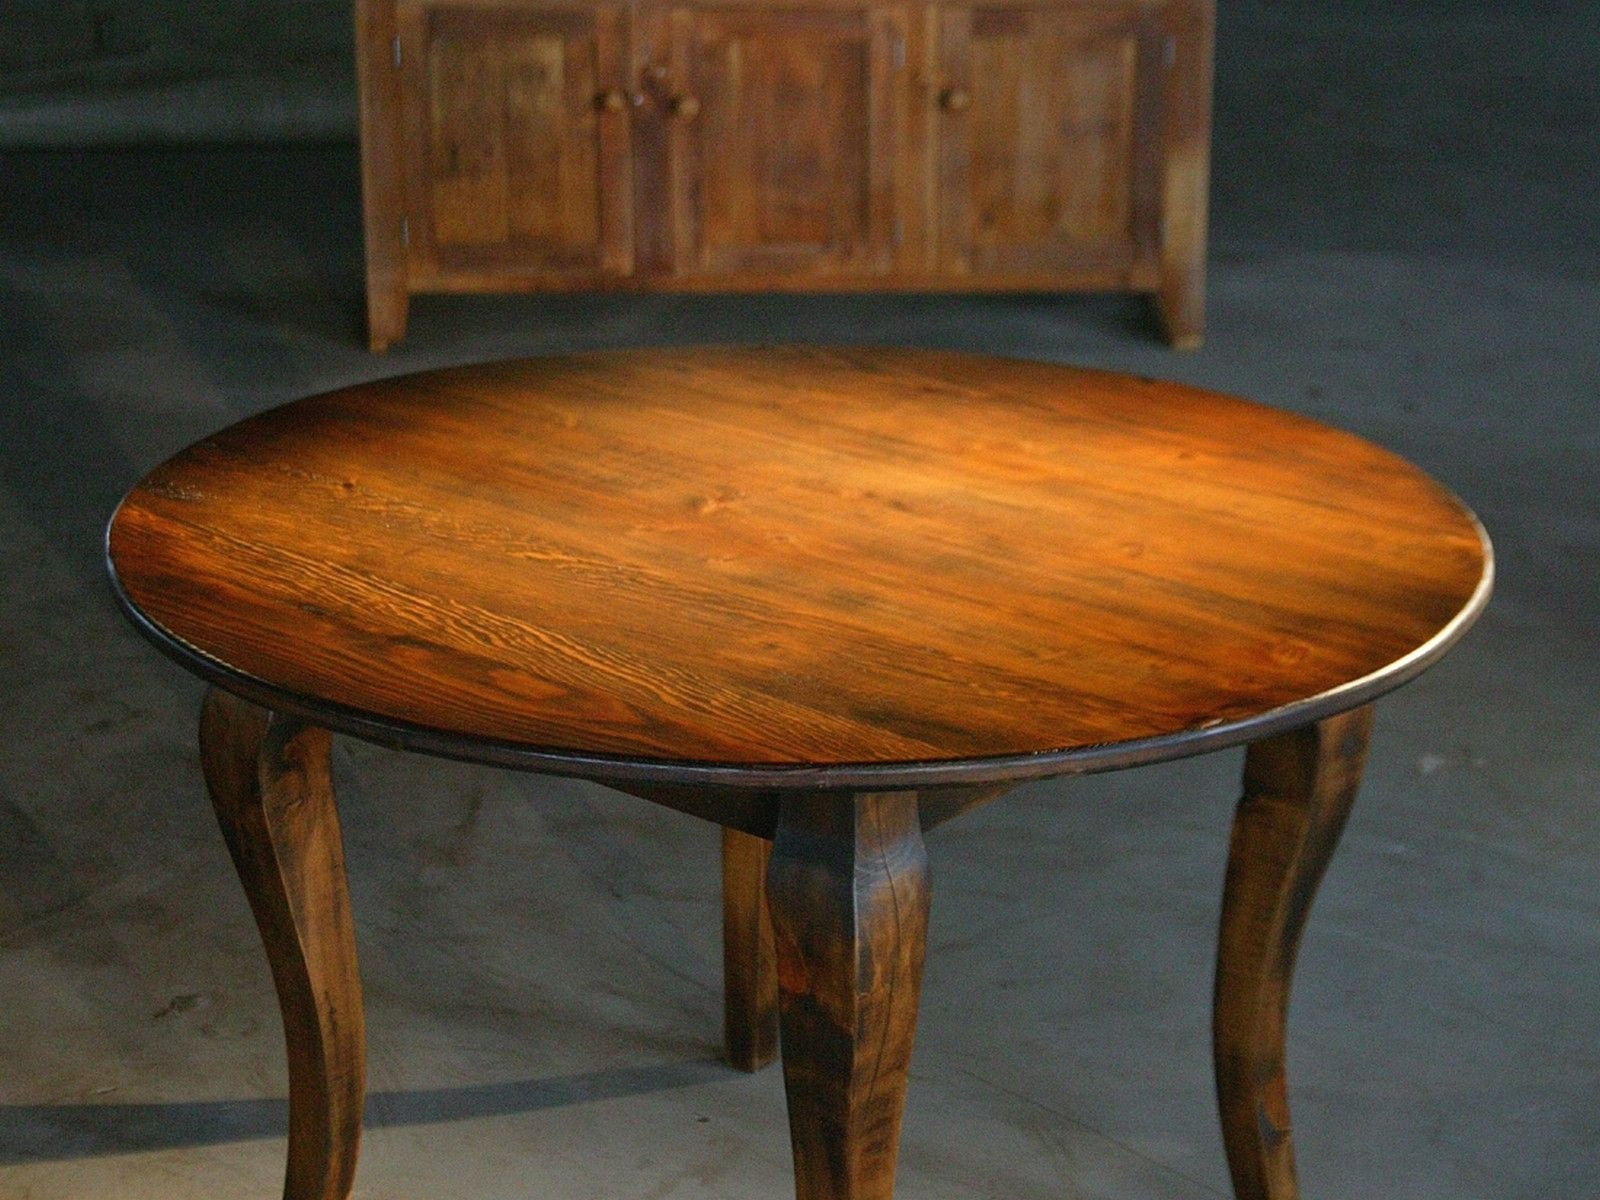 Custom Made Round End Table From Reclaimed Old Pine